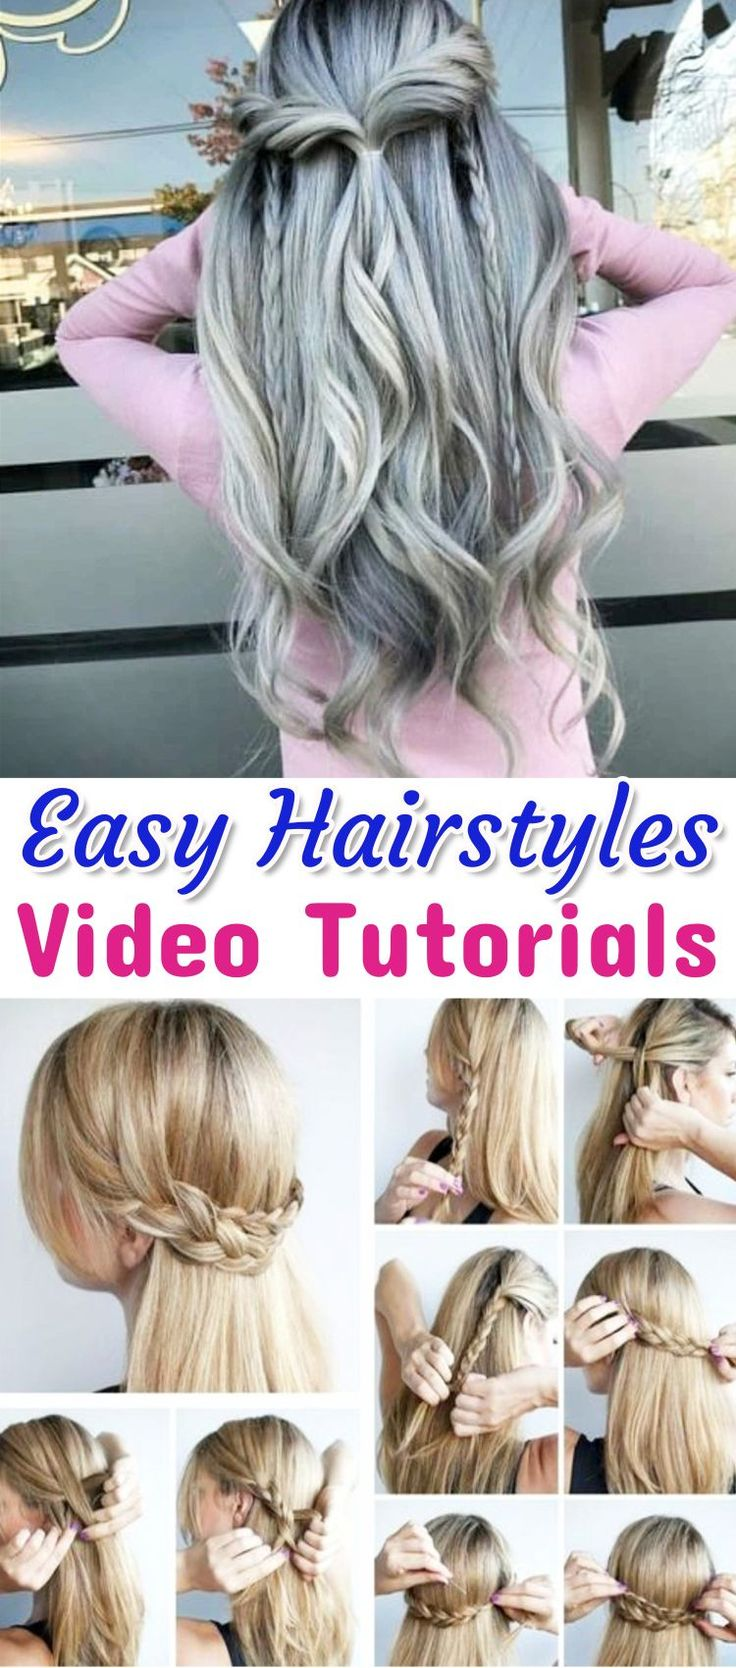 Easy hairstyle ideas video tutorials - easy step by step instructions (great for beginners) #easyhairstylesforbeginners